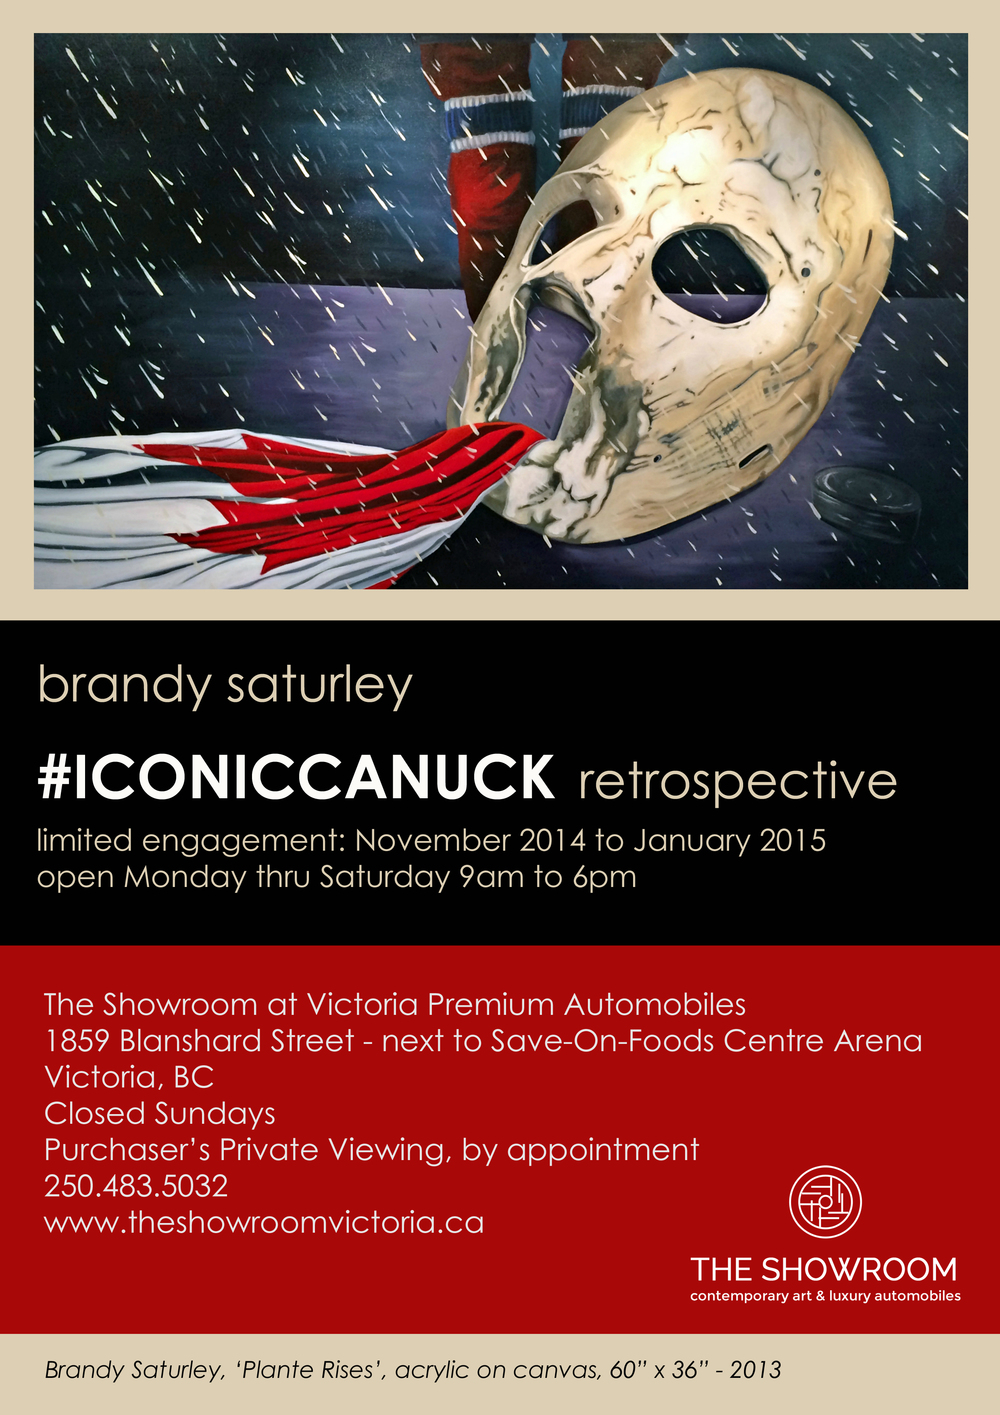 #ICONCICCANUCK - paintings by Canadian artist Brandy Saturley at Victoria Premium Automobiles in Victoria, BC